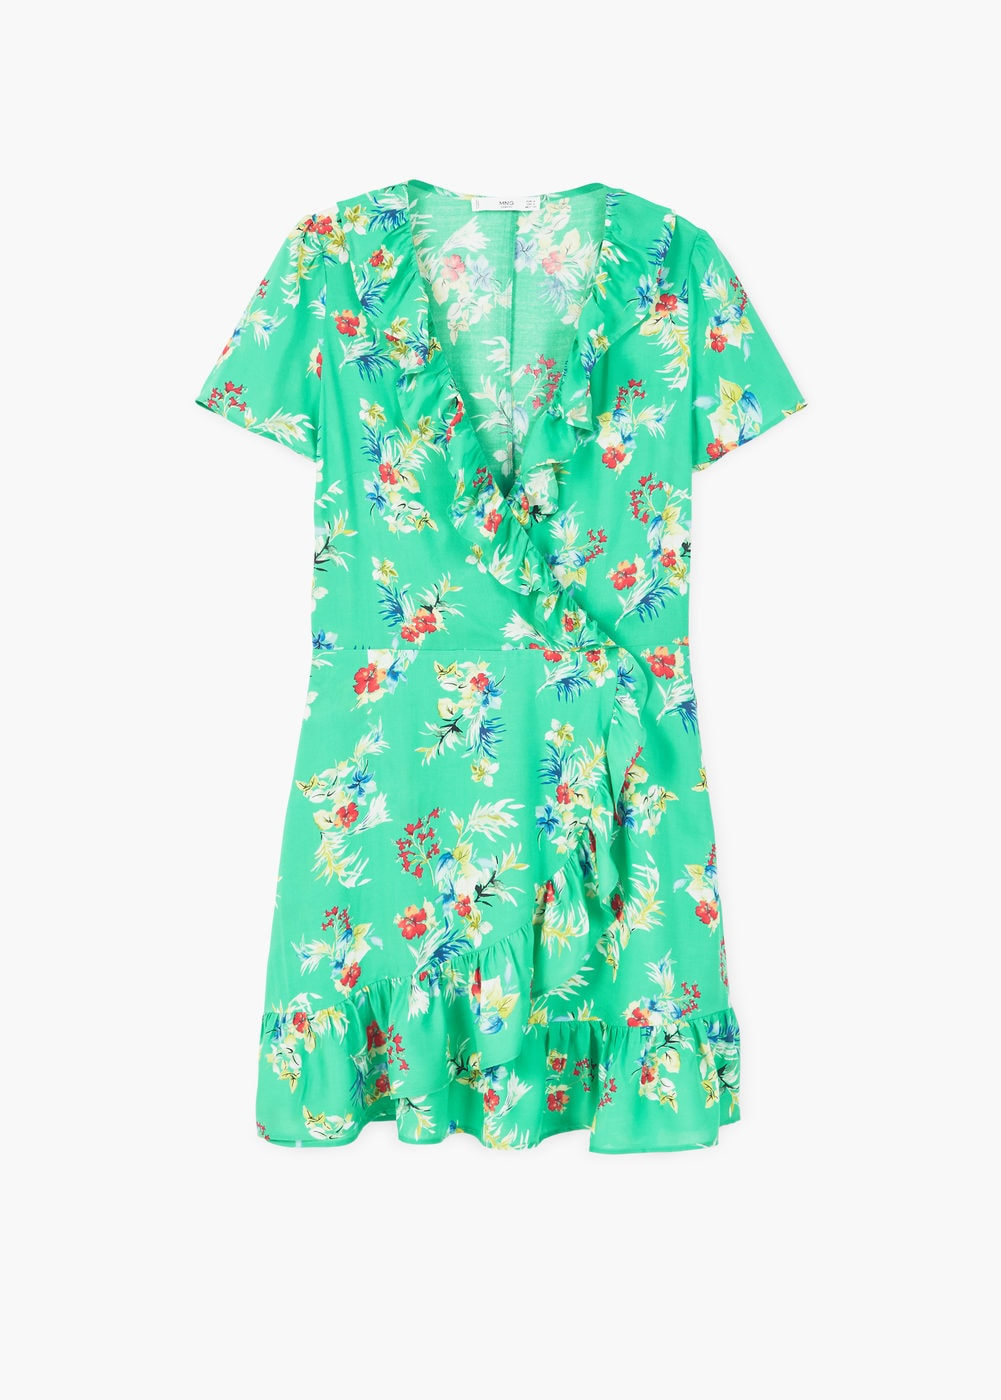 Ruffled Floral Dress.jpg